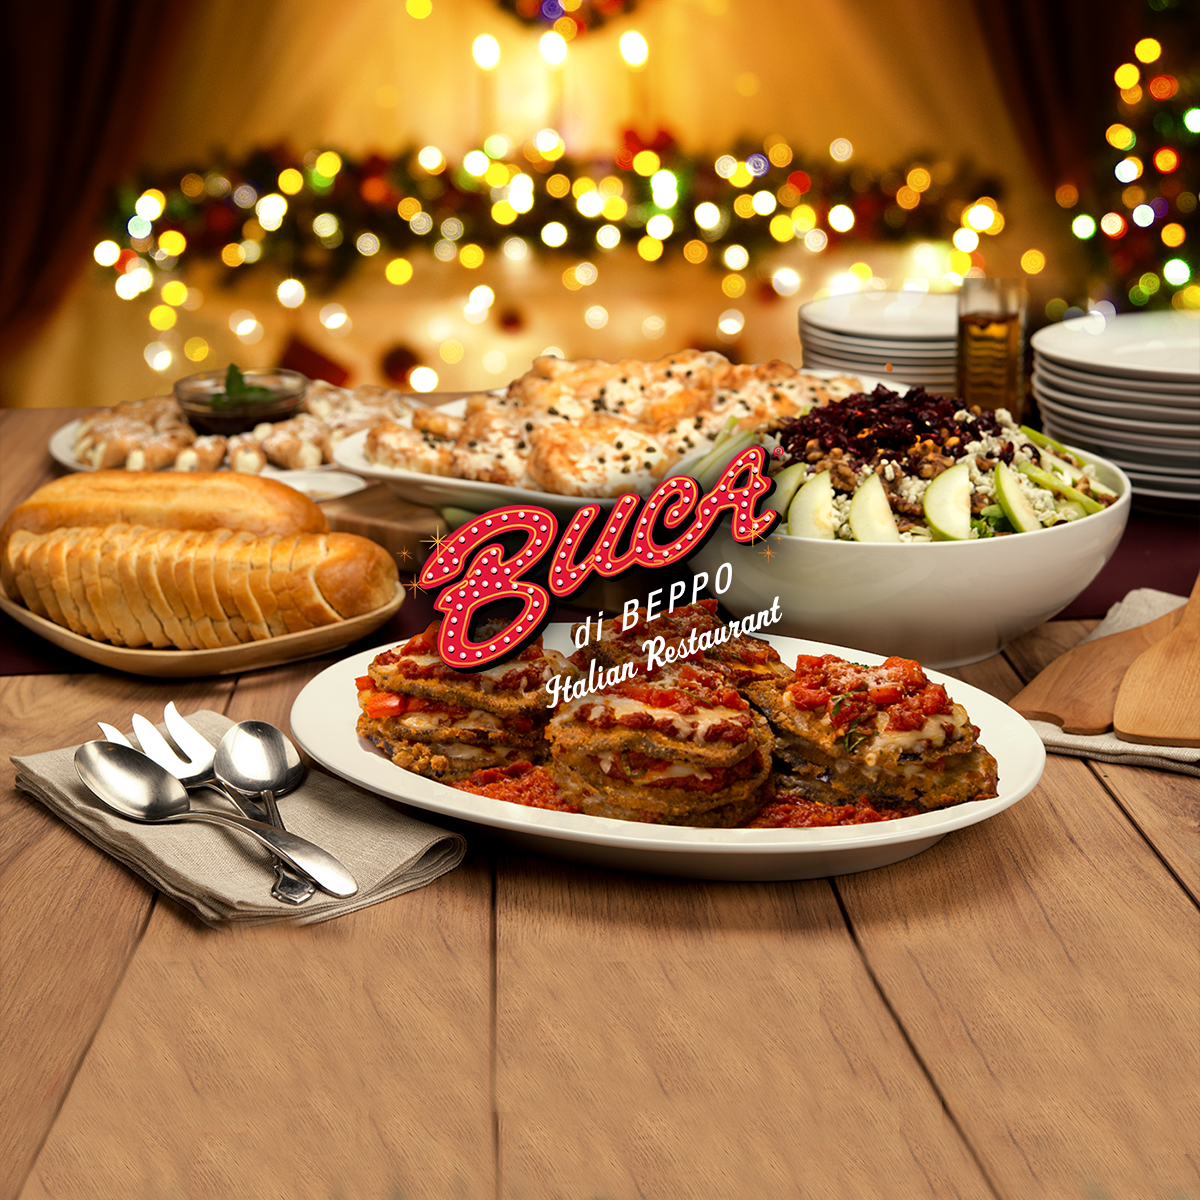 Enter to win holiday catering, special offers and more!